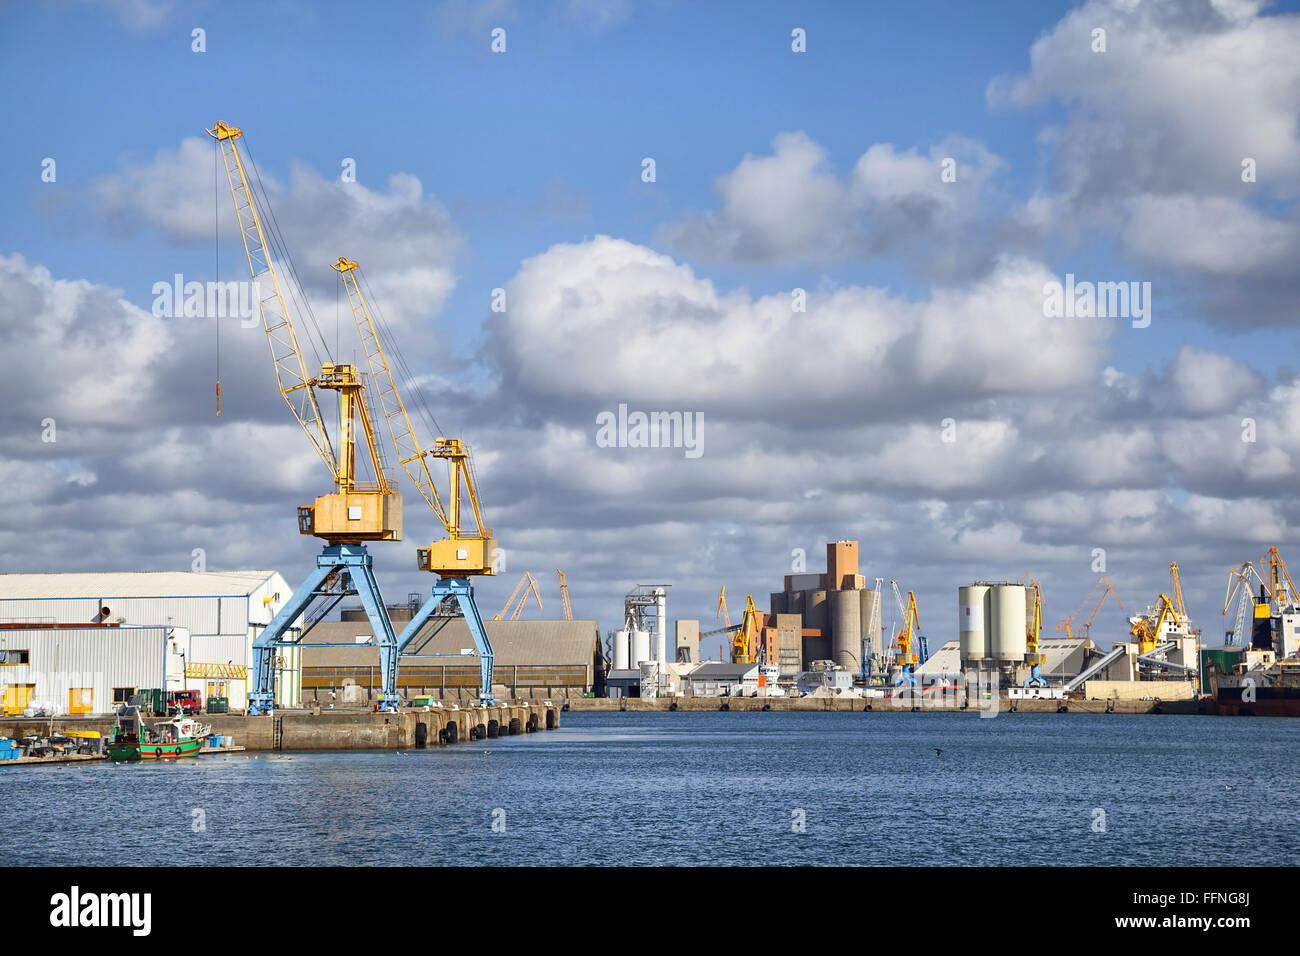 Cranes in the port of Brest, Brittany, France - Stock Image